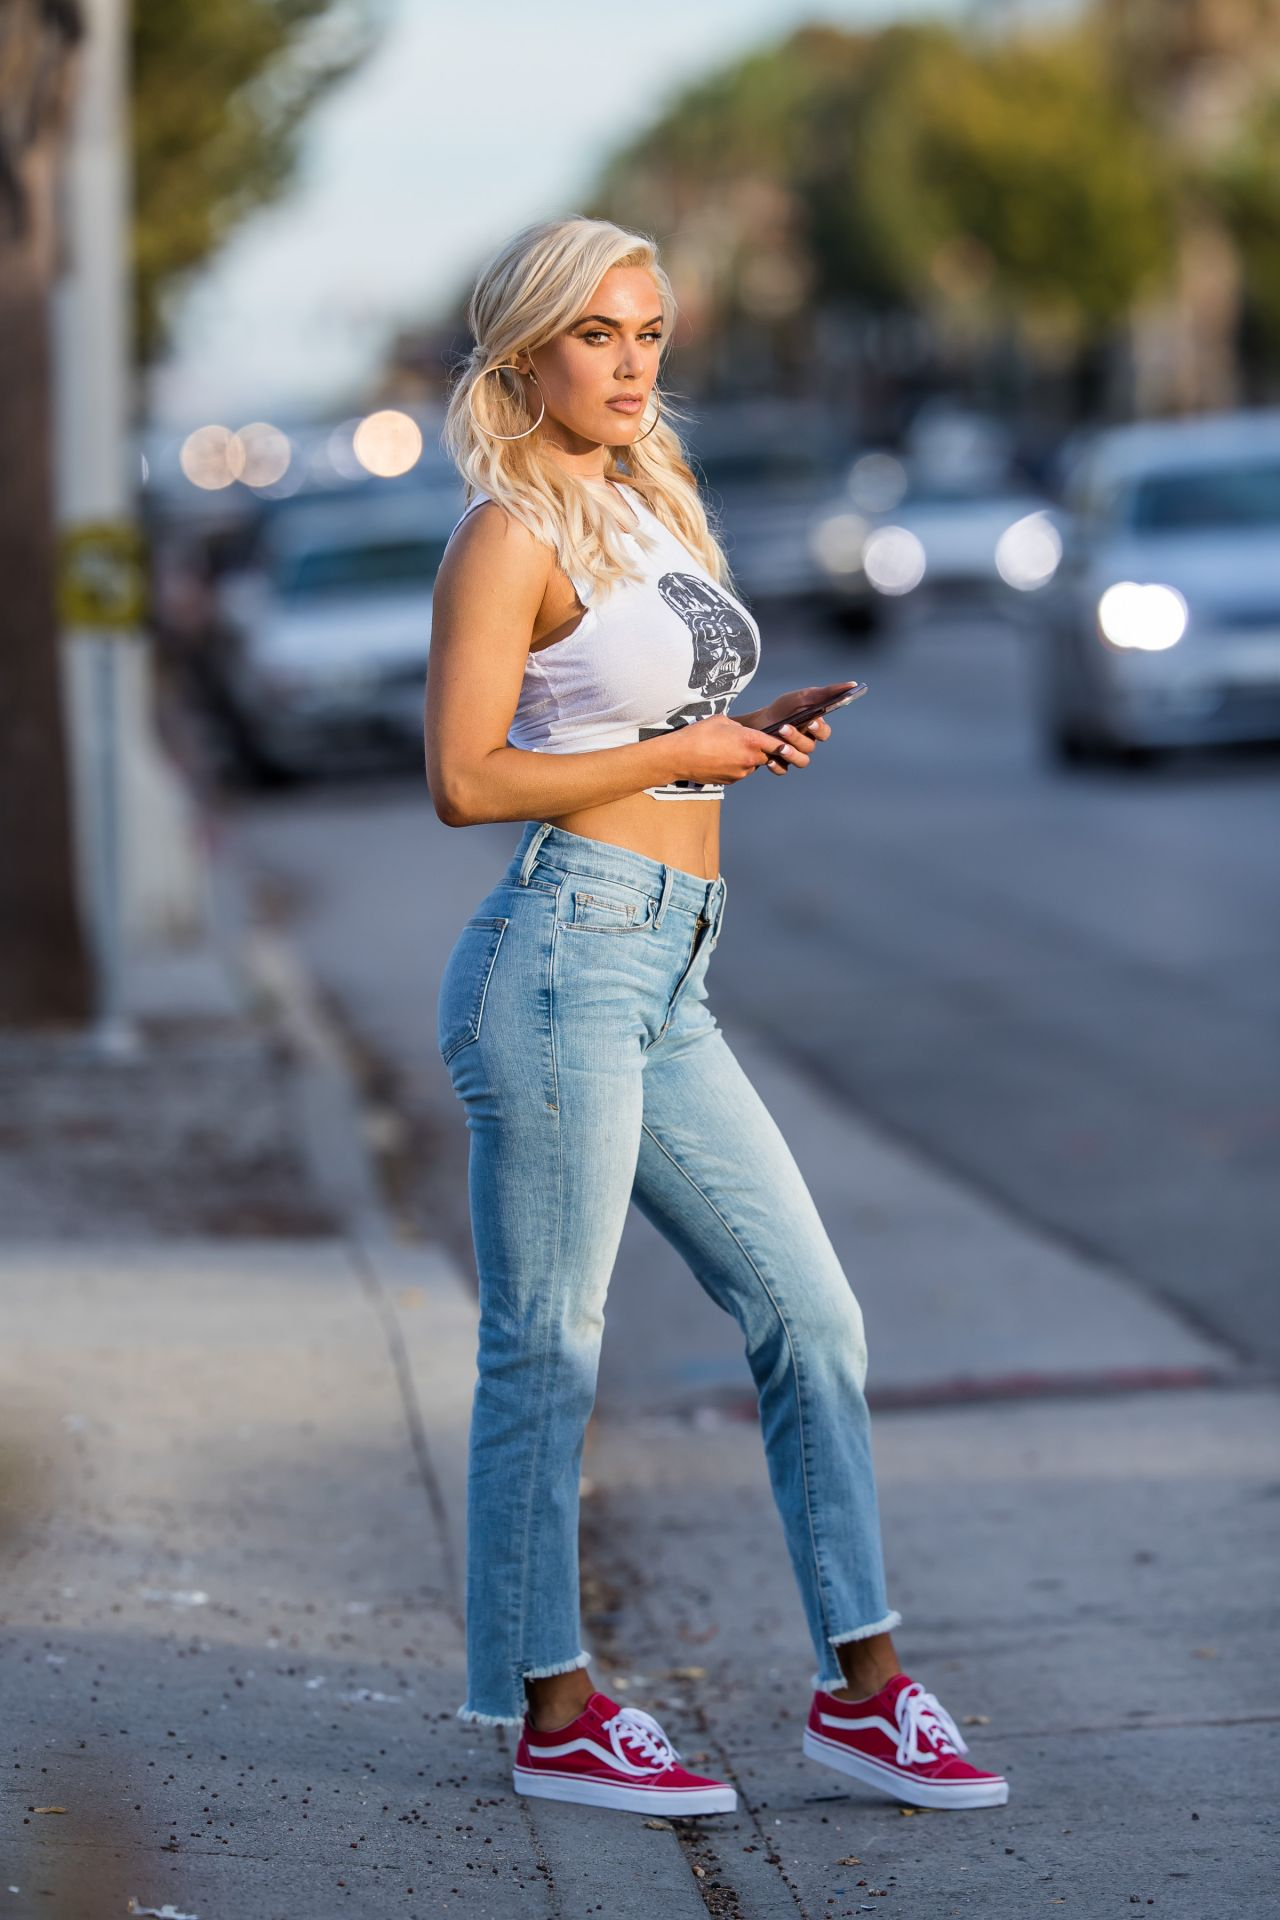 Lana Cj Perry In Tight Star Wars Tee And Jeans In Los -5168